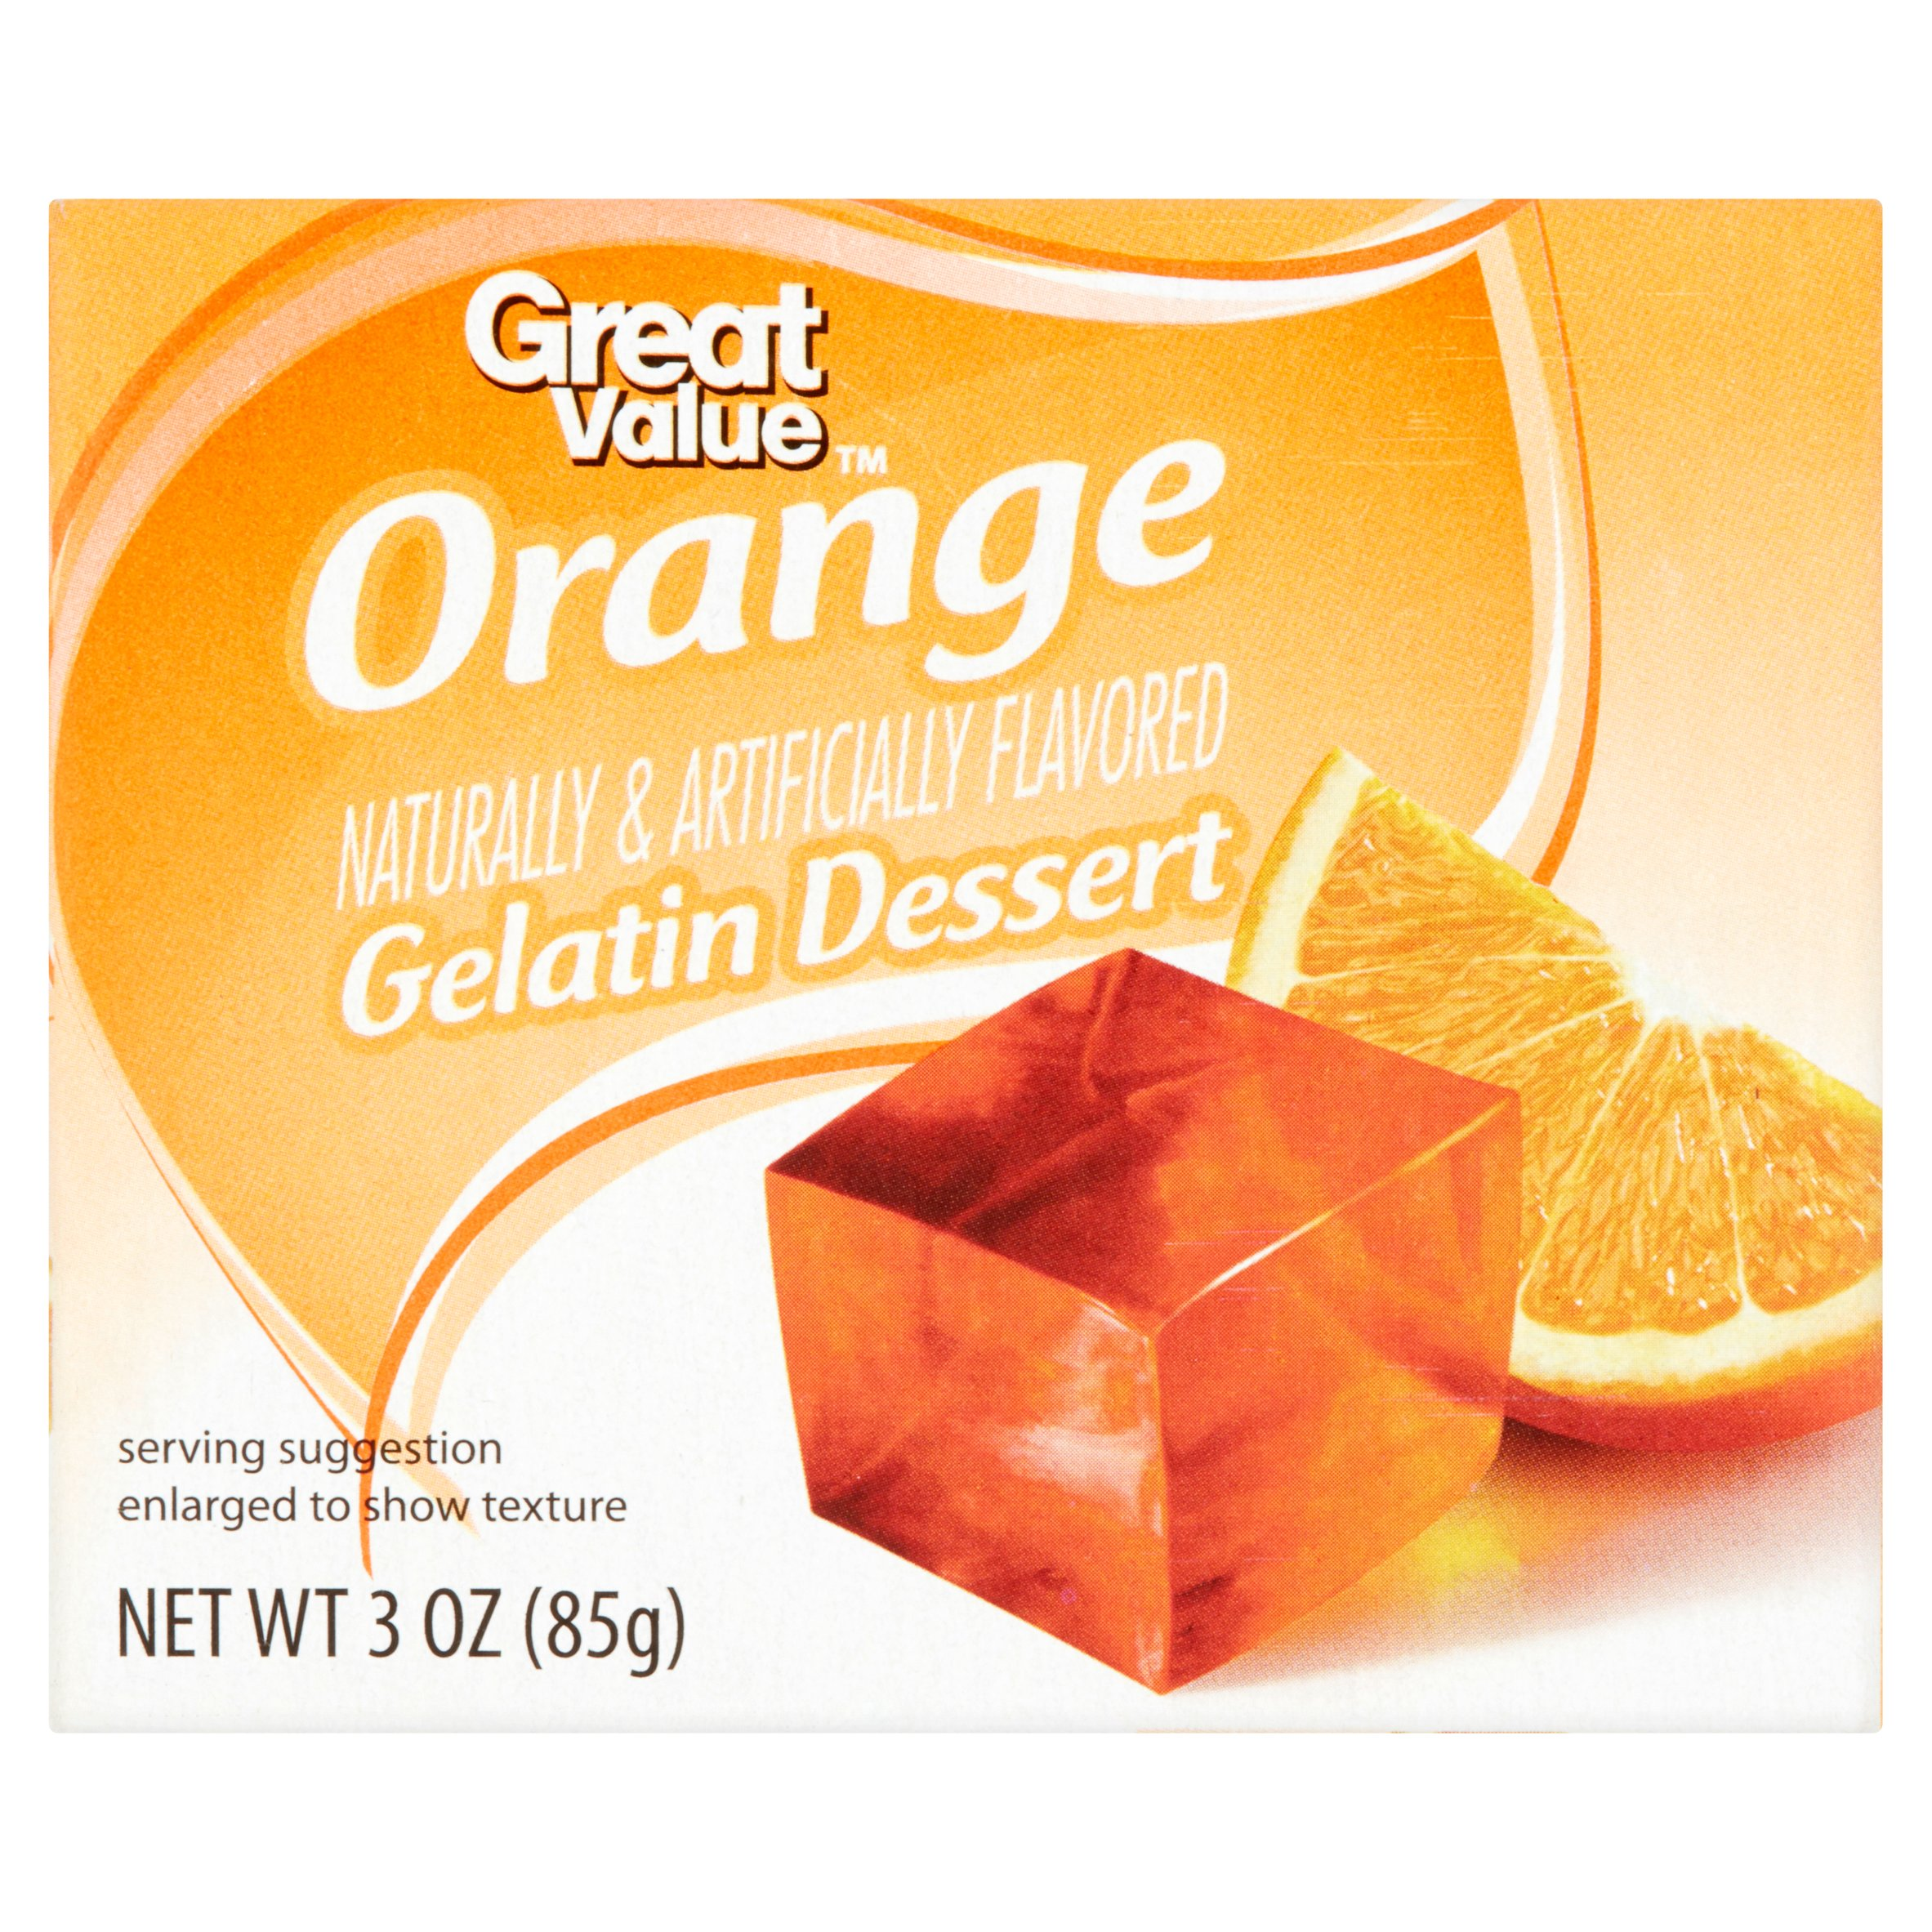 Great Value Orange Gelatin Dessert, 3 oz by Wal-Mart Stores, Inc.